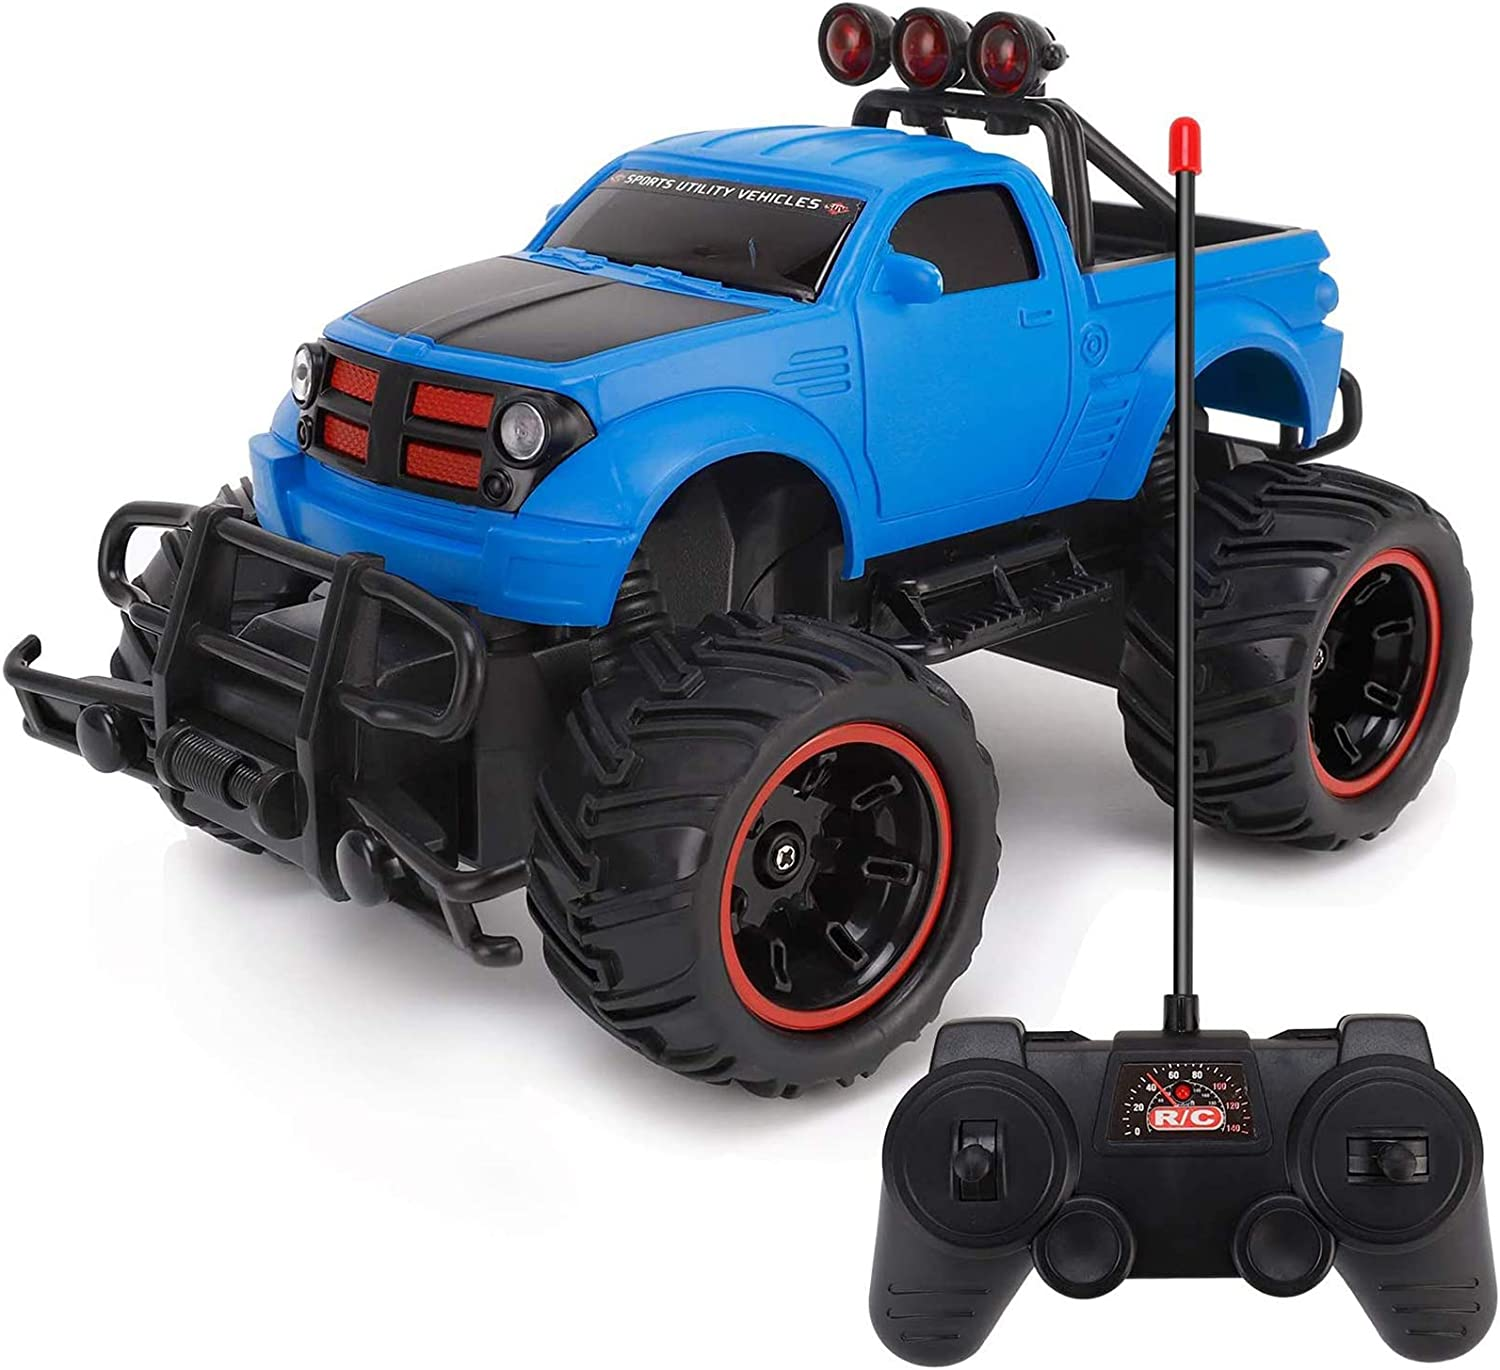 Amazon Com Liberty Imports Rc Monster Pickup Truck Remote Control Rtr Electric Vehicle Off Road Race Car 27mhz Toys Games